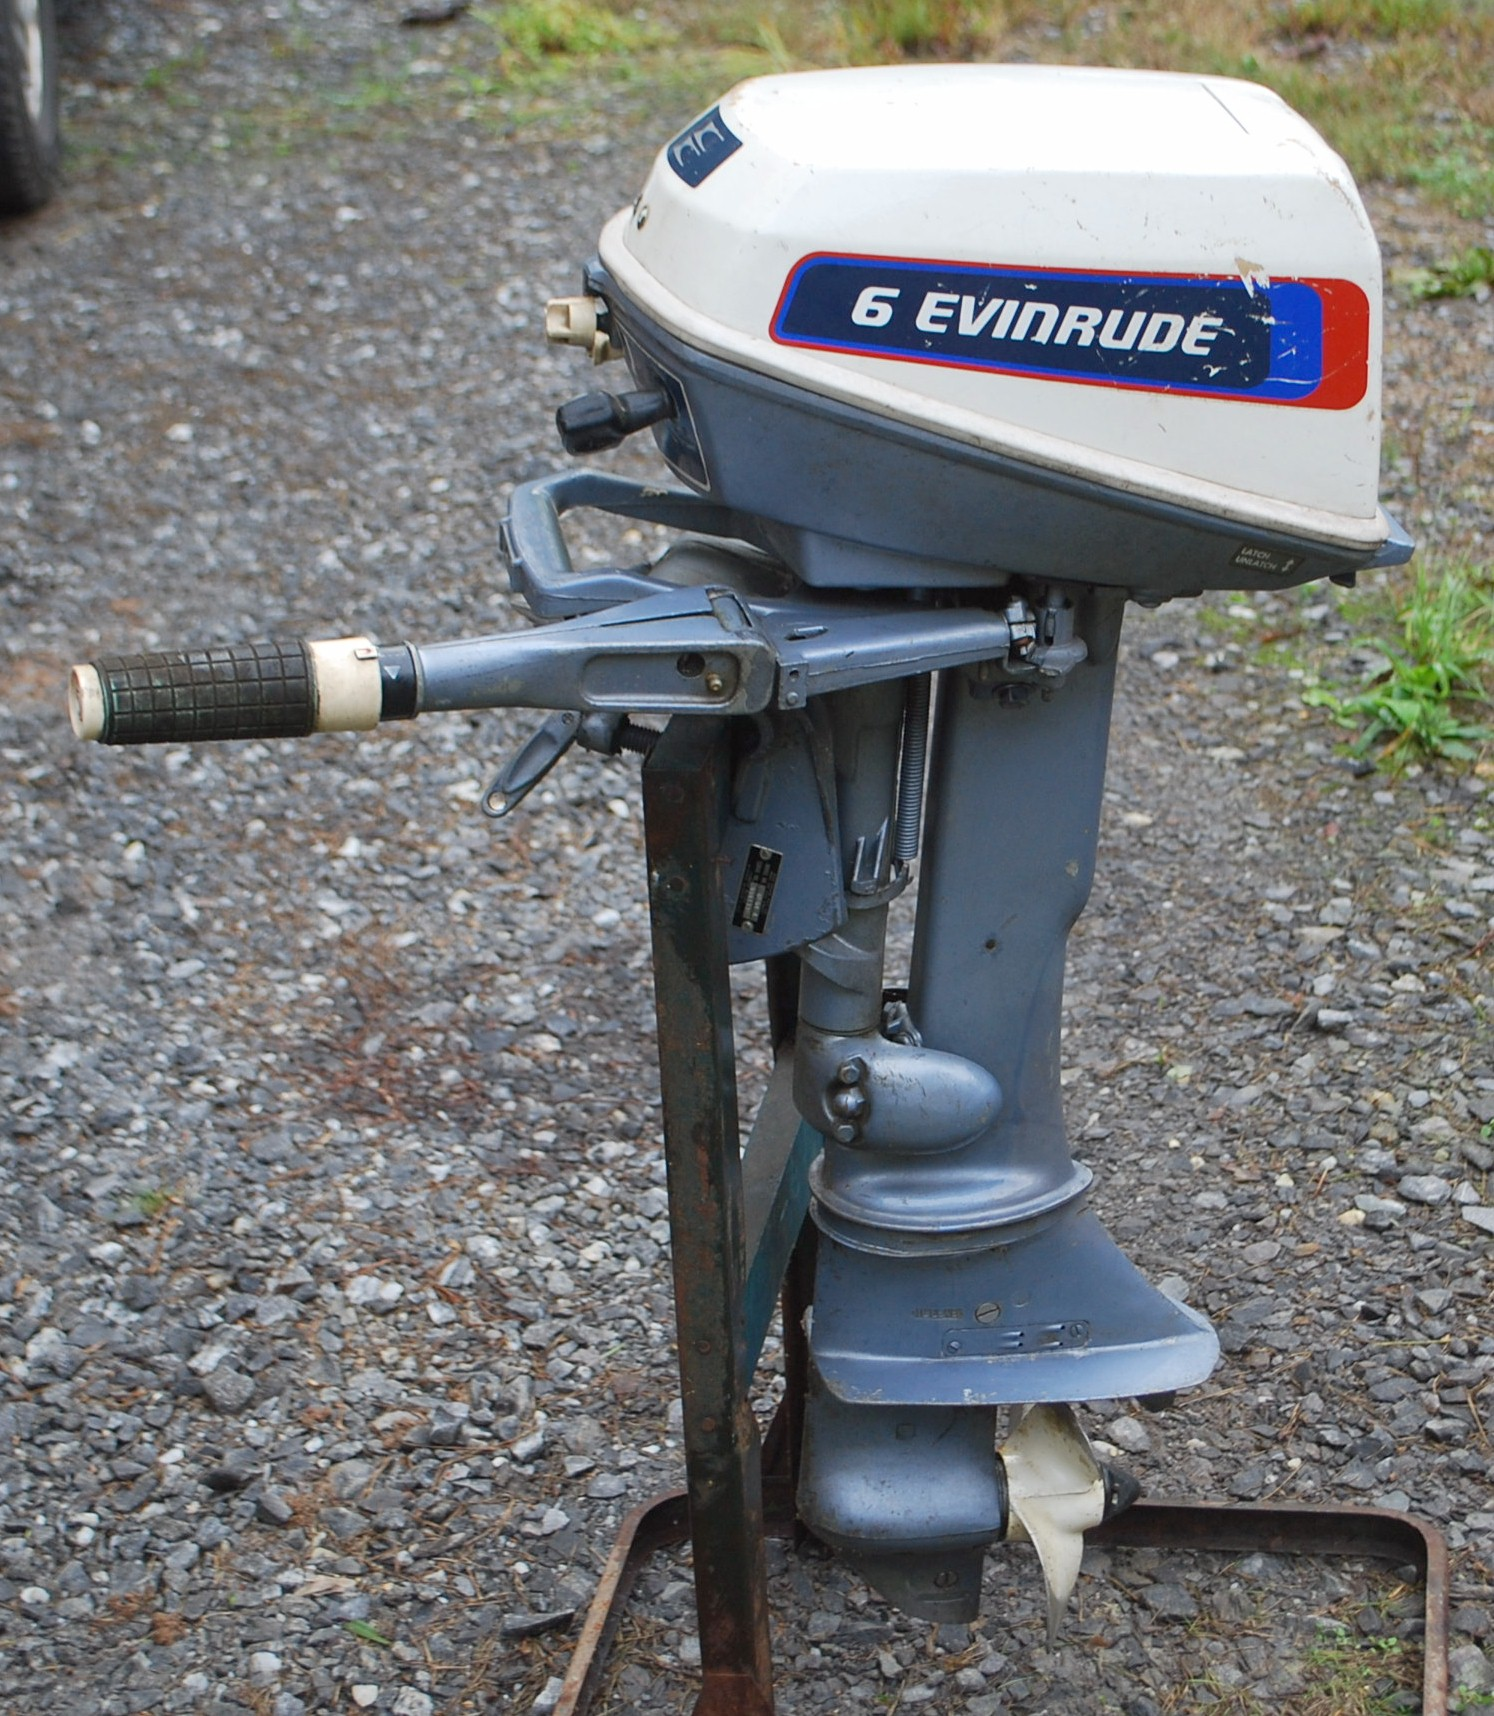 Parts for 1976 Evinrude 6 HP Outboard Motors